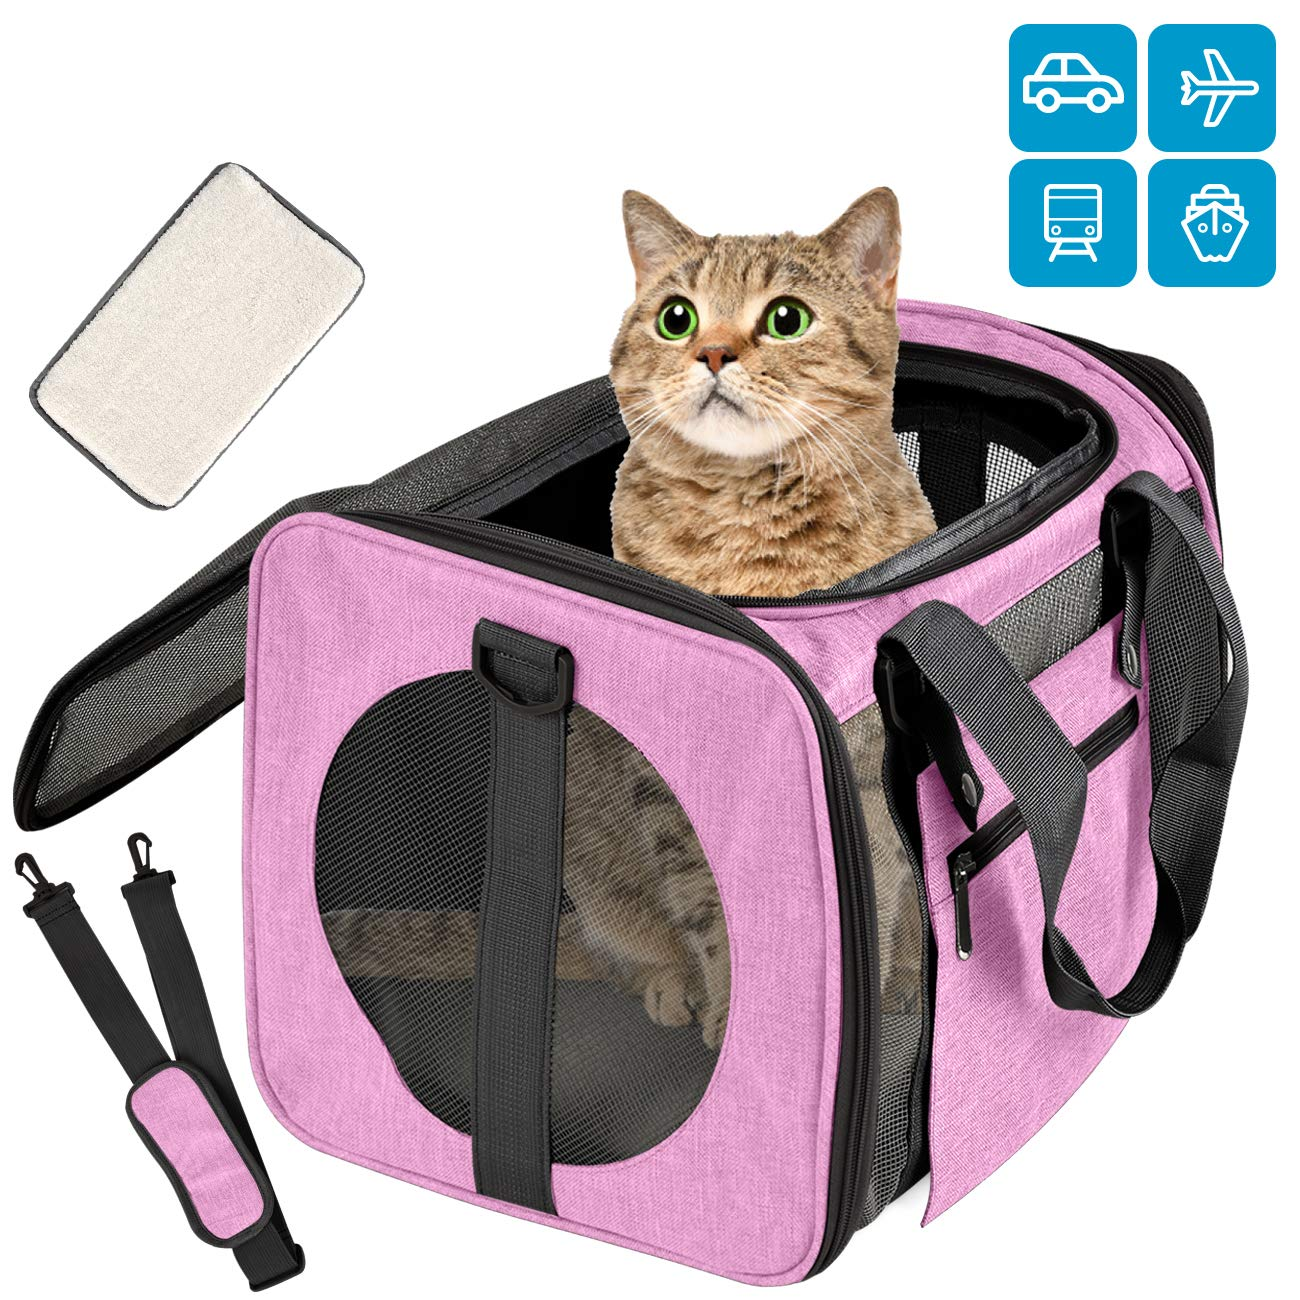 Moyeno Airline Approved Pet Carrier Cat Carriers Dog Carrier for Small Medium Cats Dogs Puppies Bunny Collapsible Puppy Carrier Soft Sided Small Dog Carrier Adjustable Strap Independent Pocket (Pink) by Moyeno